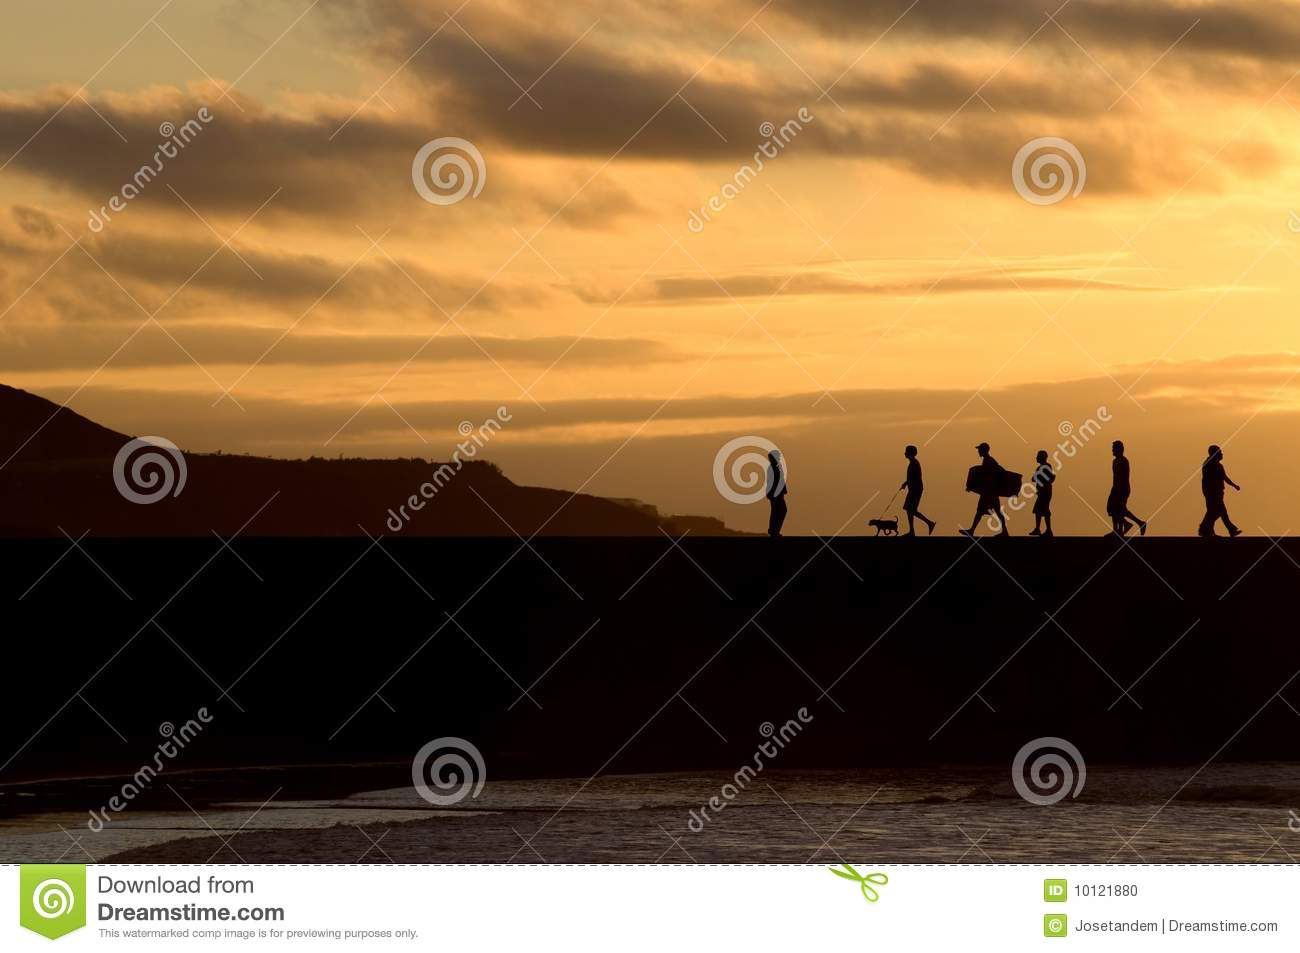 Silhouette of people walking at sunset